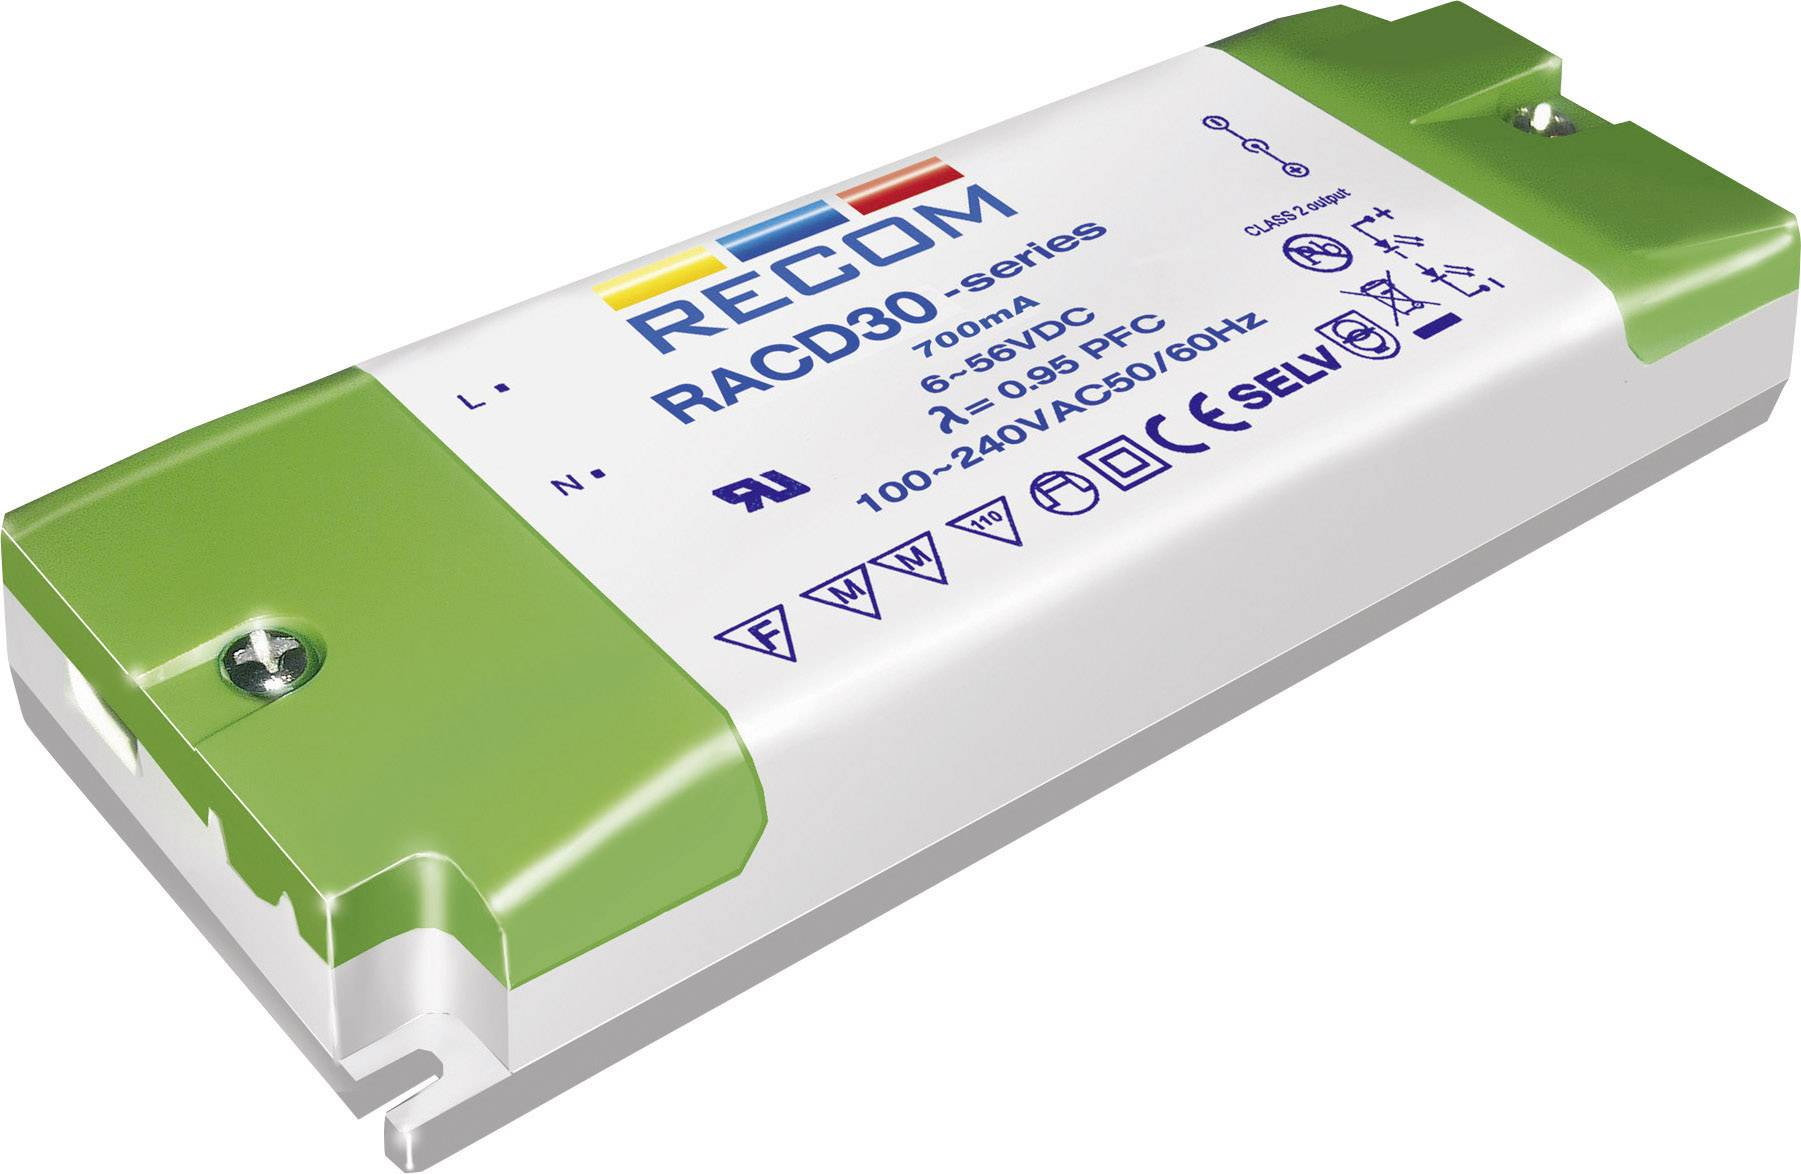 LED driver Recom Lighting RACD30-700, 30 W (max), 0.7 A, 10 - 43 V/DC